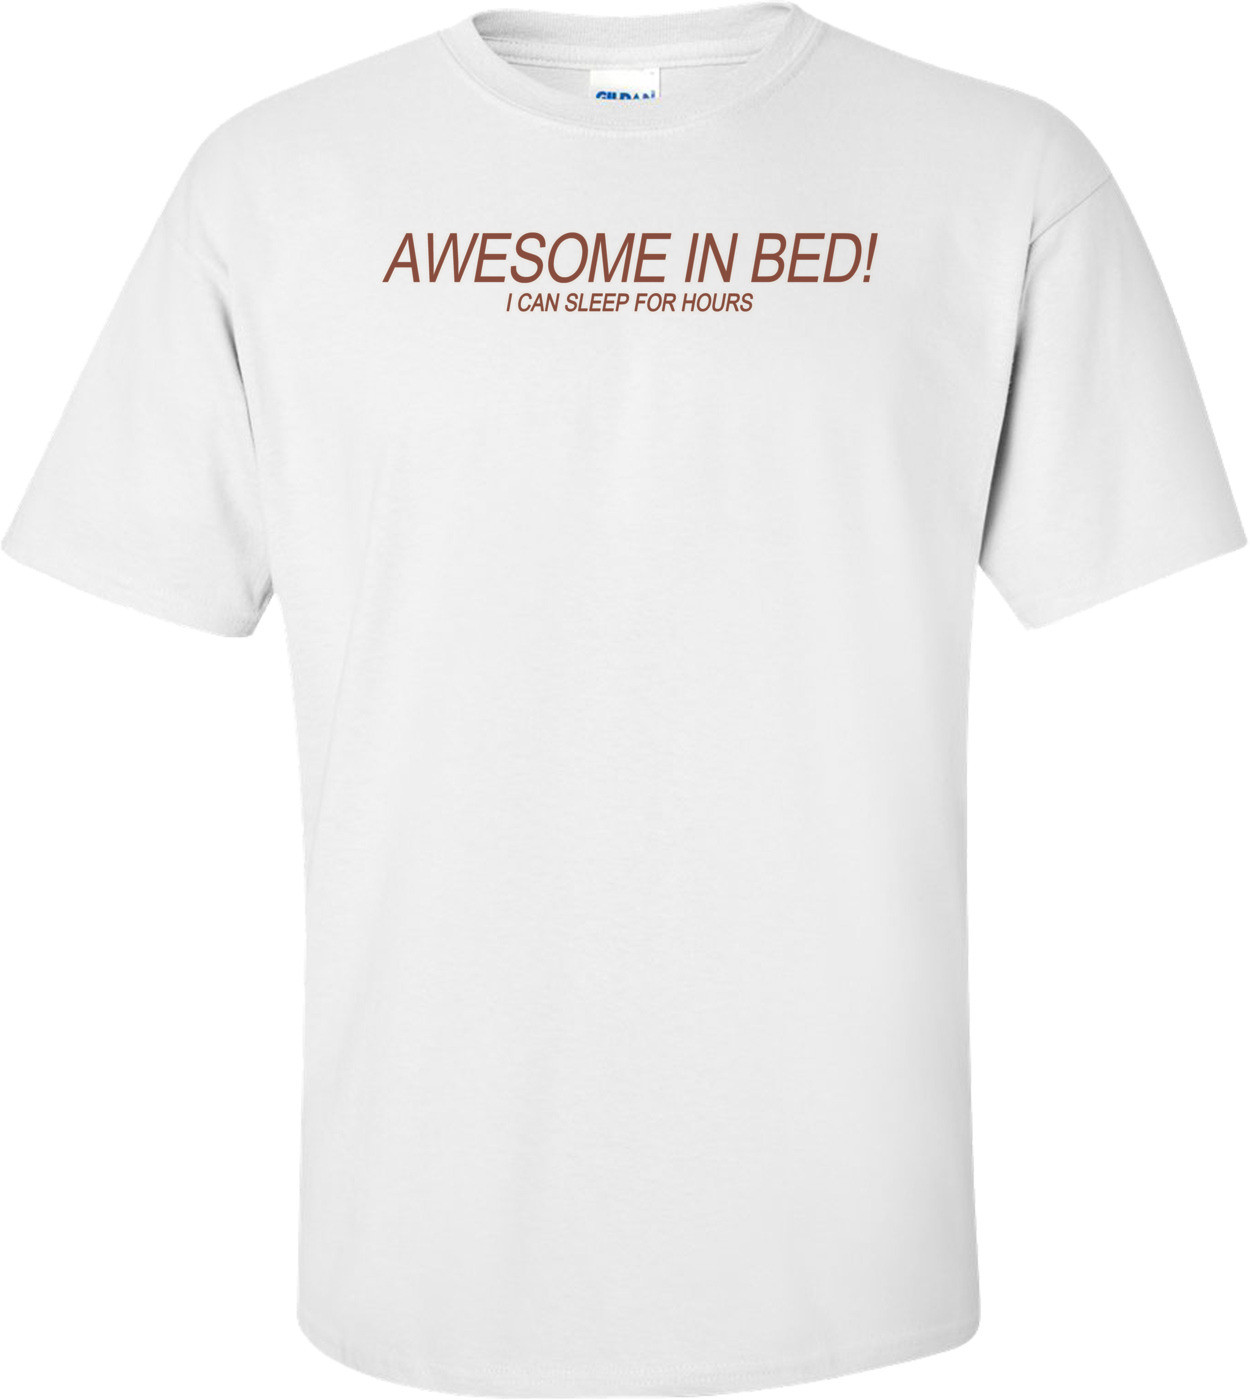 Awesome In Bed! Shirt